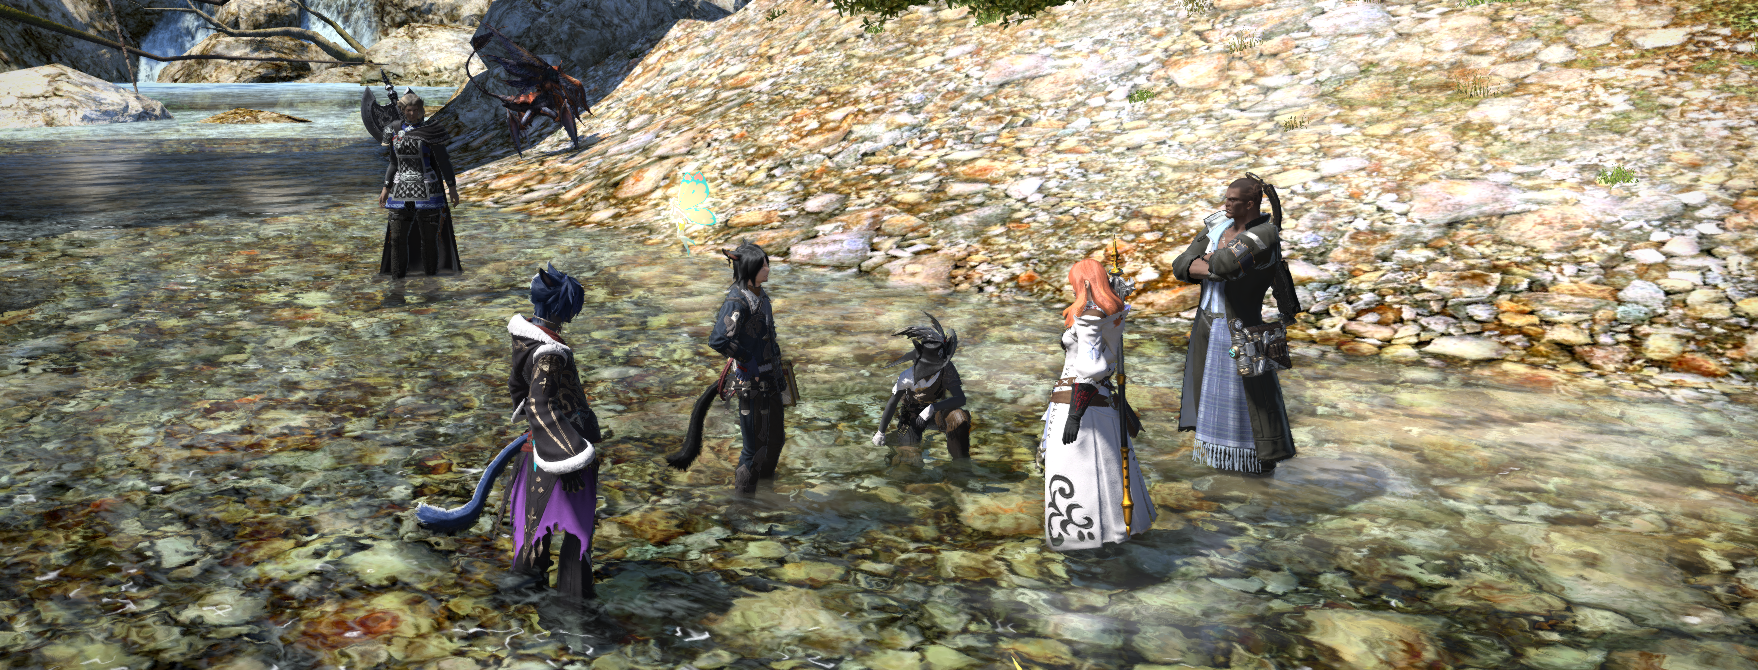 Une chasse particulière Δ Off ; Nathael Greystone 509394ffxiv02102016154550